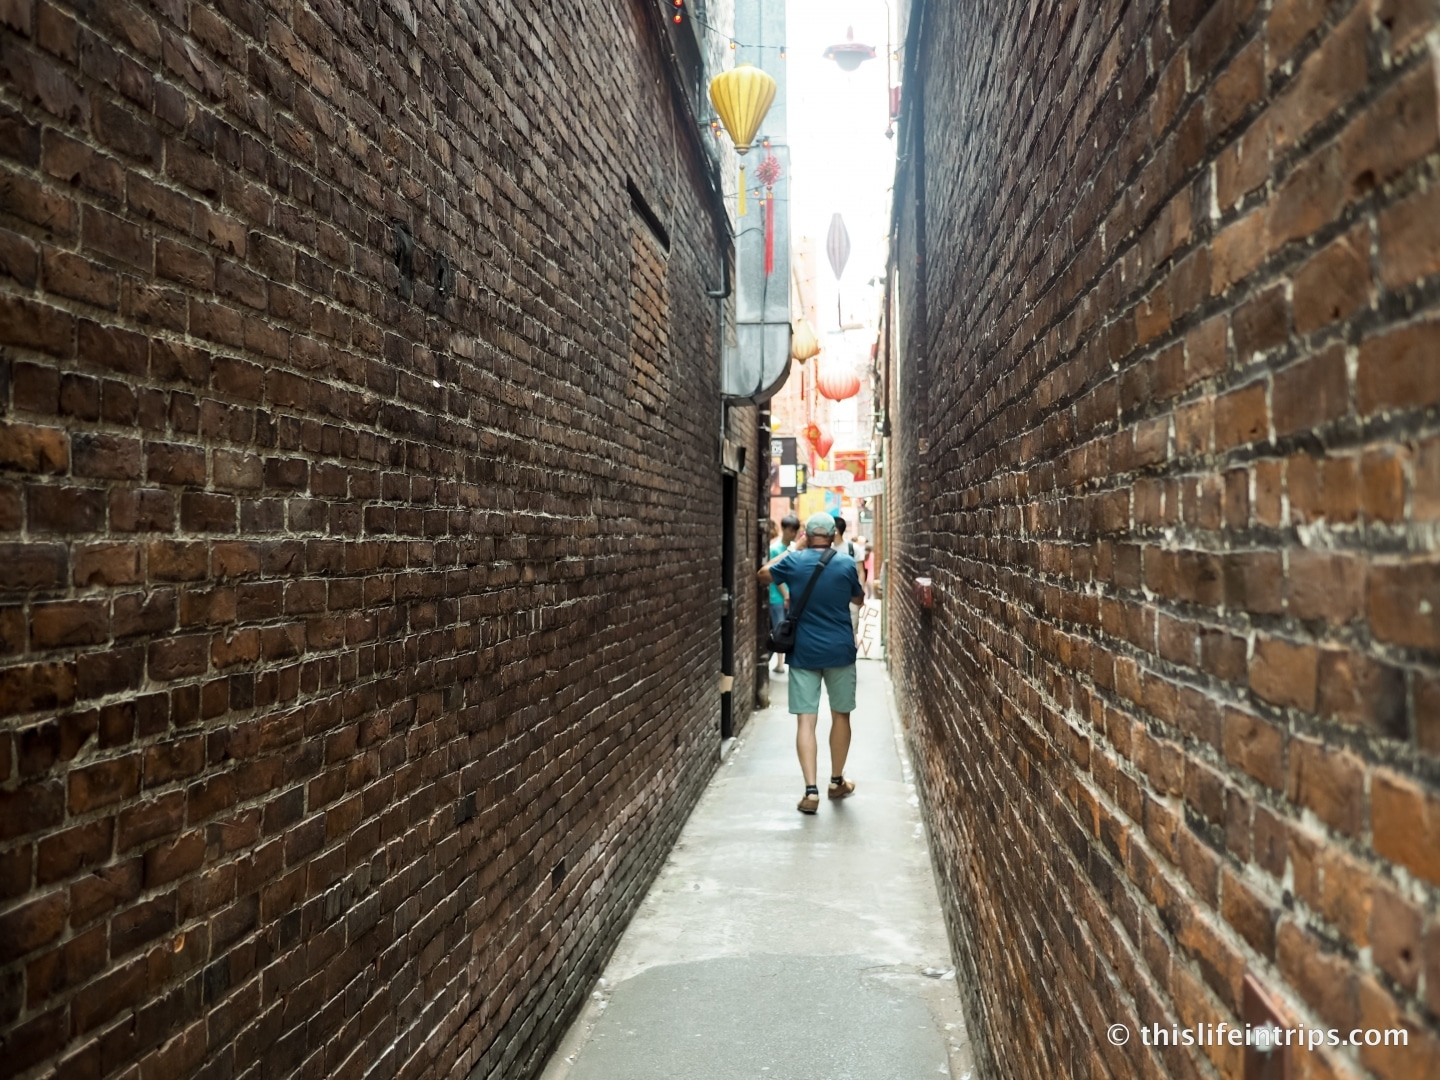 A Taste of Victoria food Tour Review | Where History & Food Meet